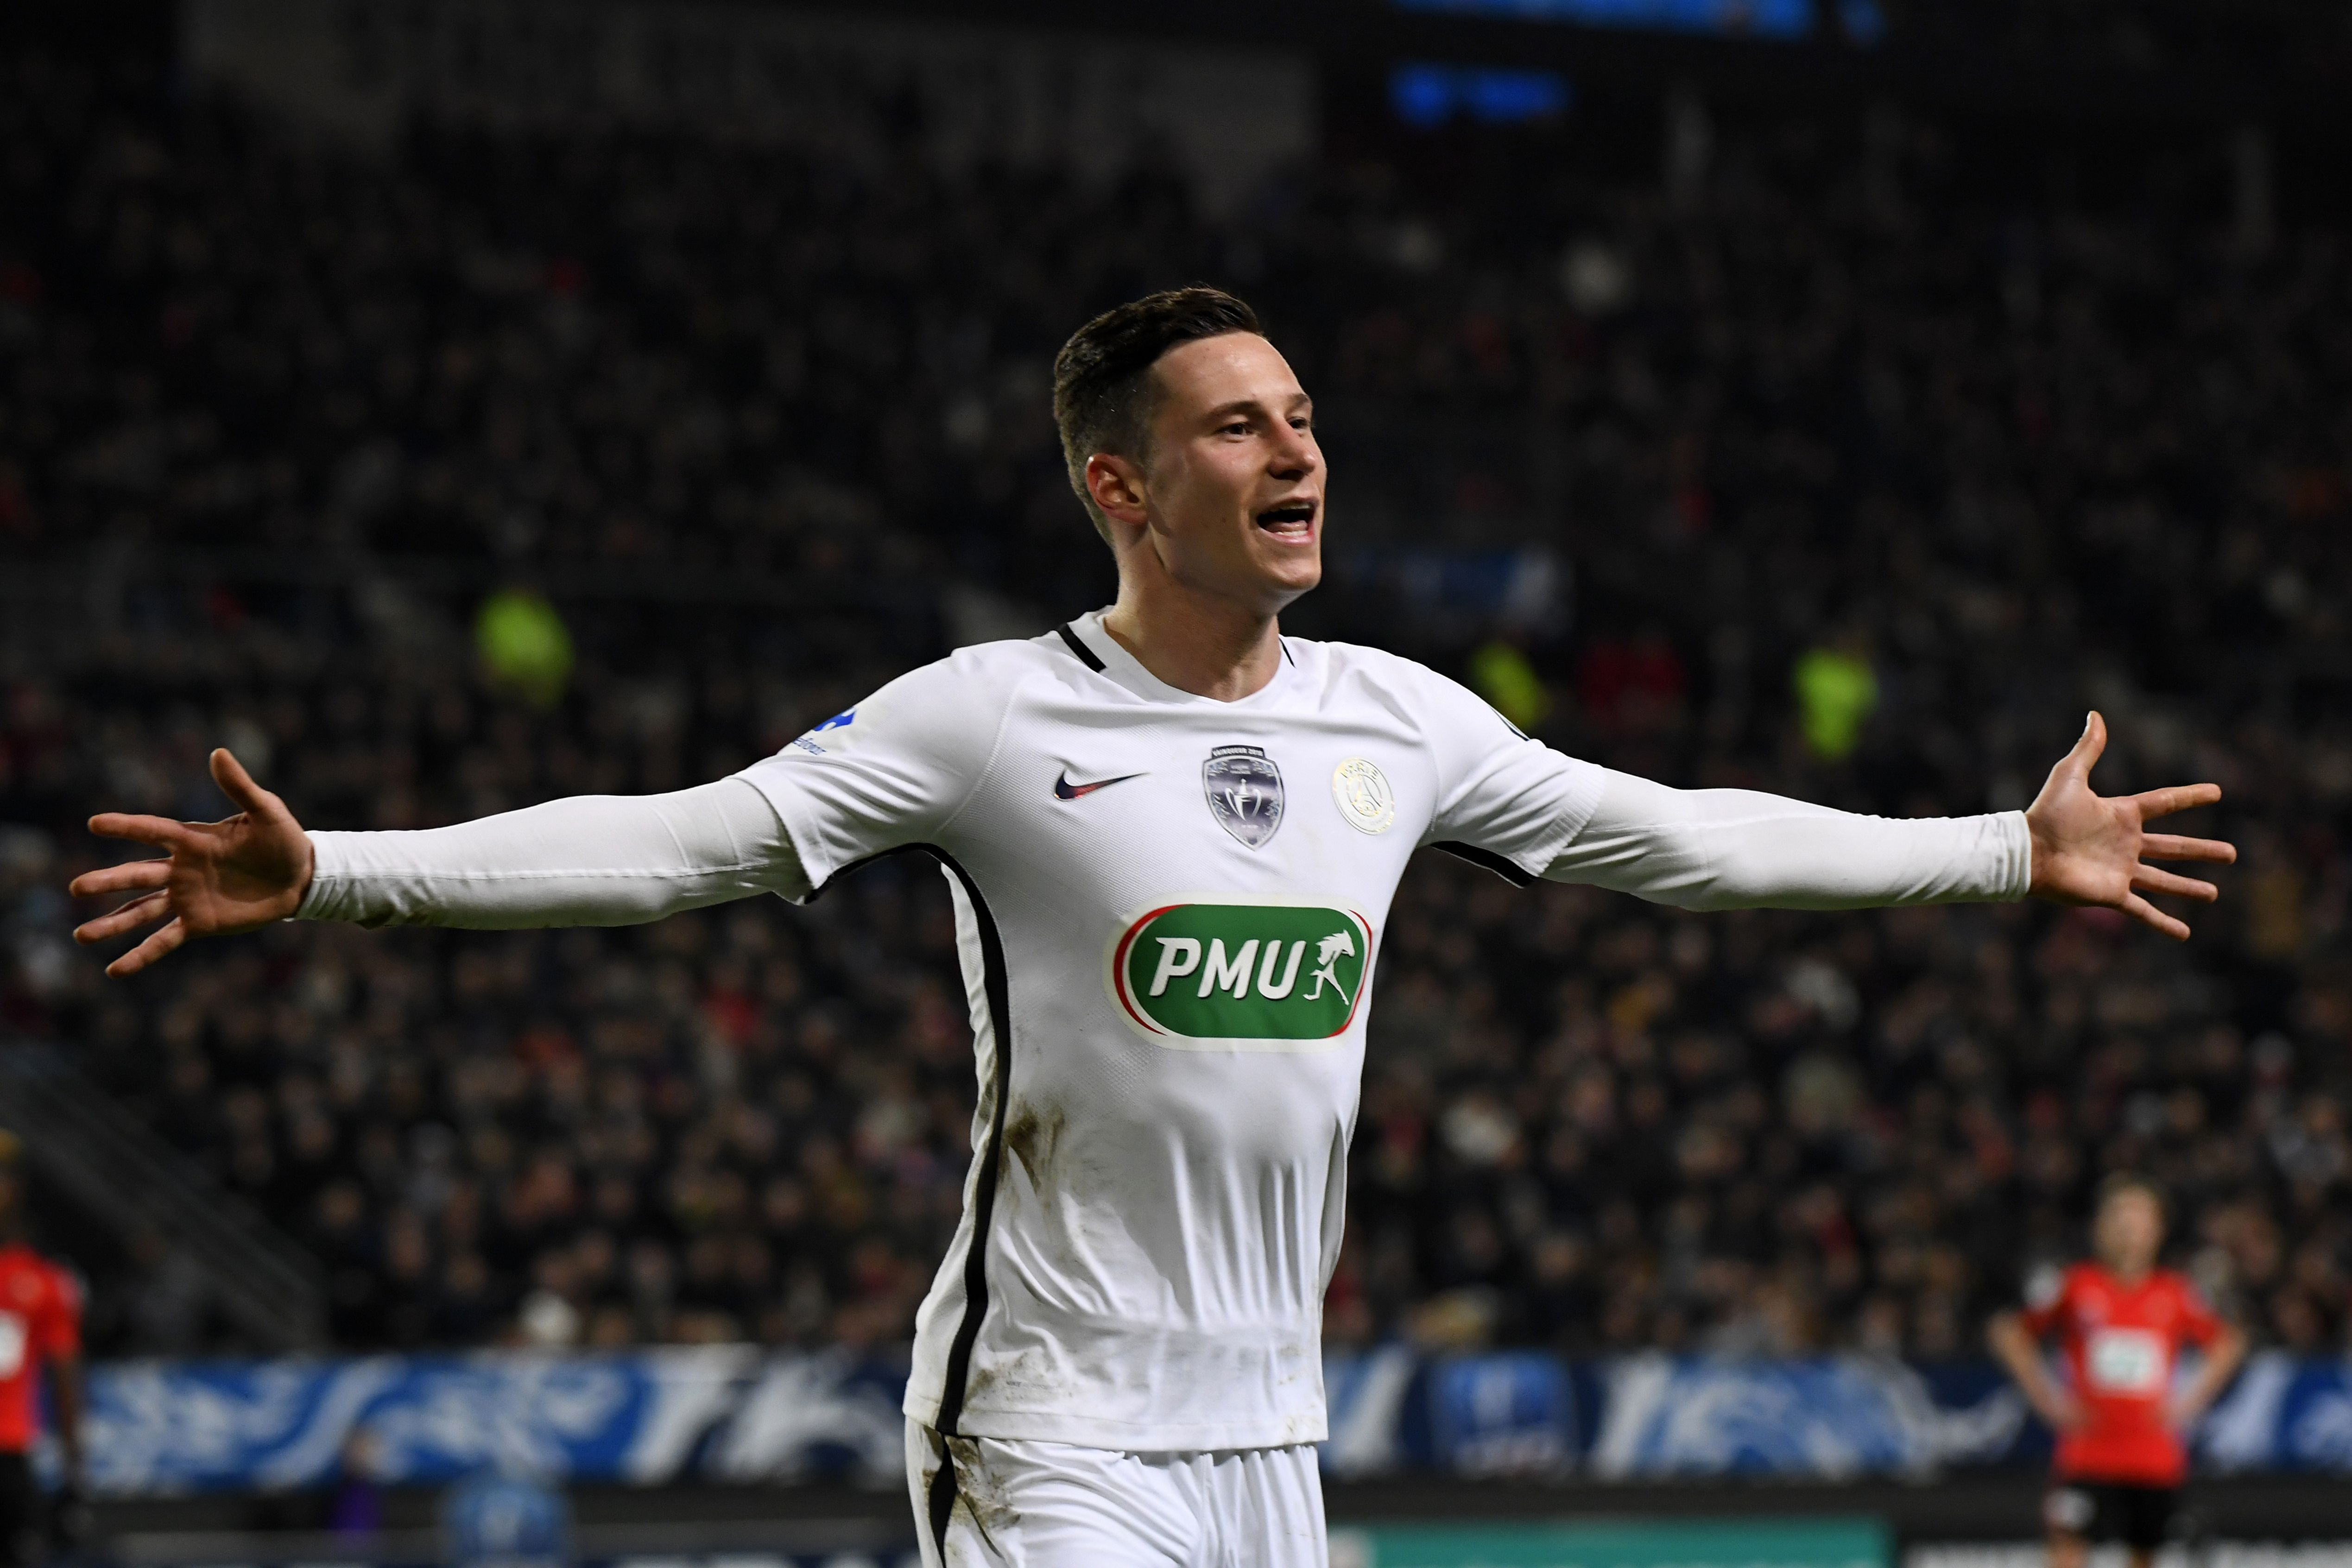 Paris Saint-Germain's German forward Julian Draxler celebrates after scoring a goal during the French Cup football match Rennes against Paris Saint Germain on February 1, 2017 at the Roahzon Park stadium in Rennes, western France. / AFP / DAMIEN MEYER (Photo credit should read DAMIEN MEYER/AFP/Getty Images)